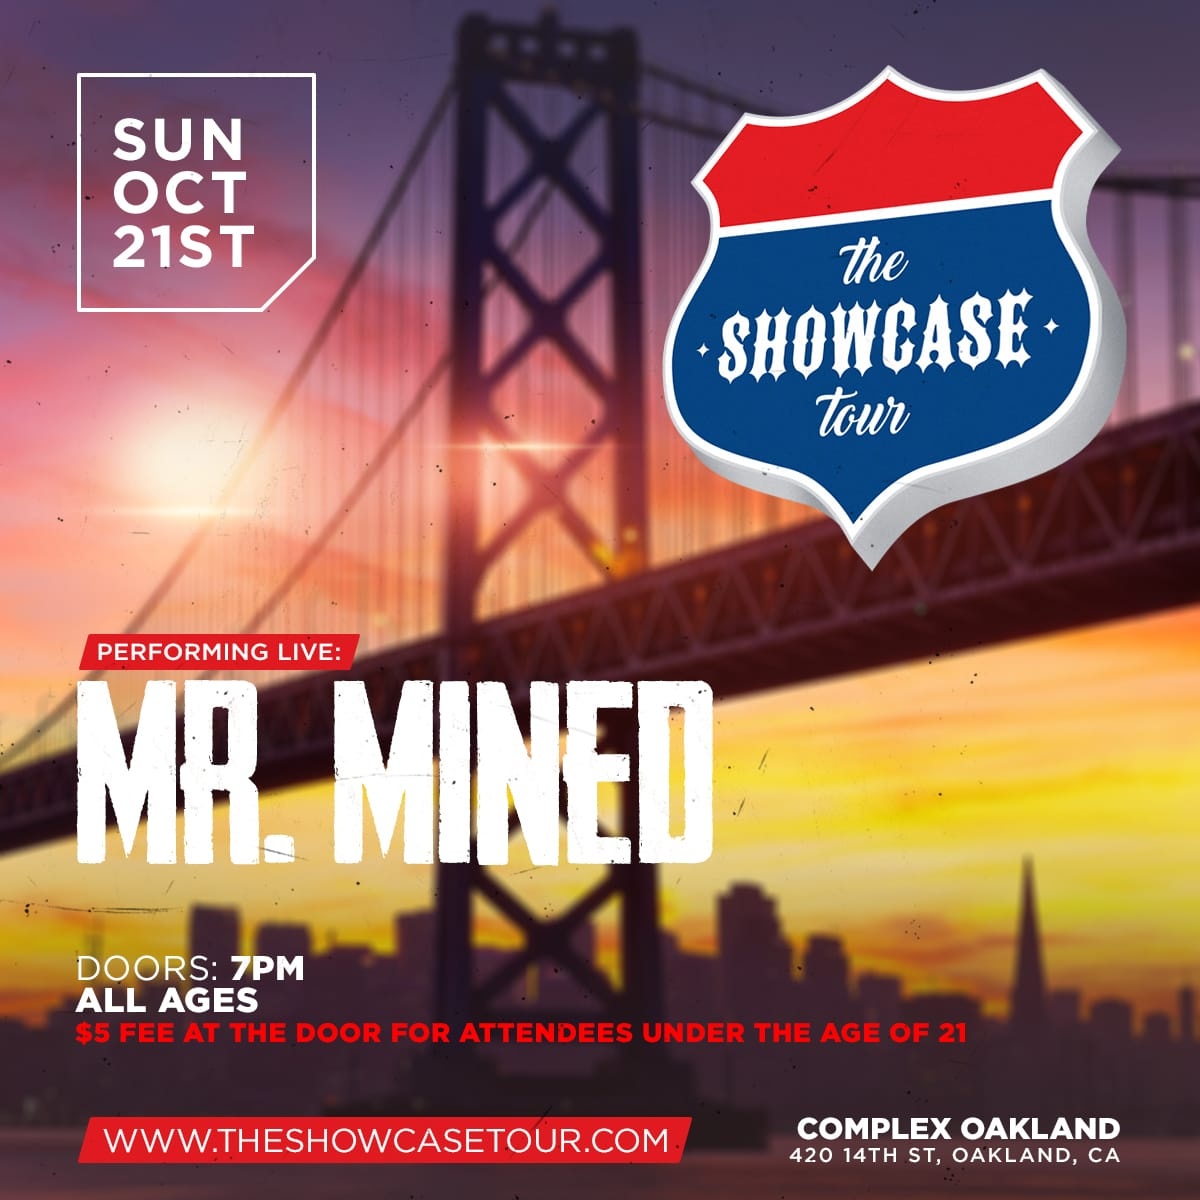 The Showcase Tour - Oakland